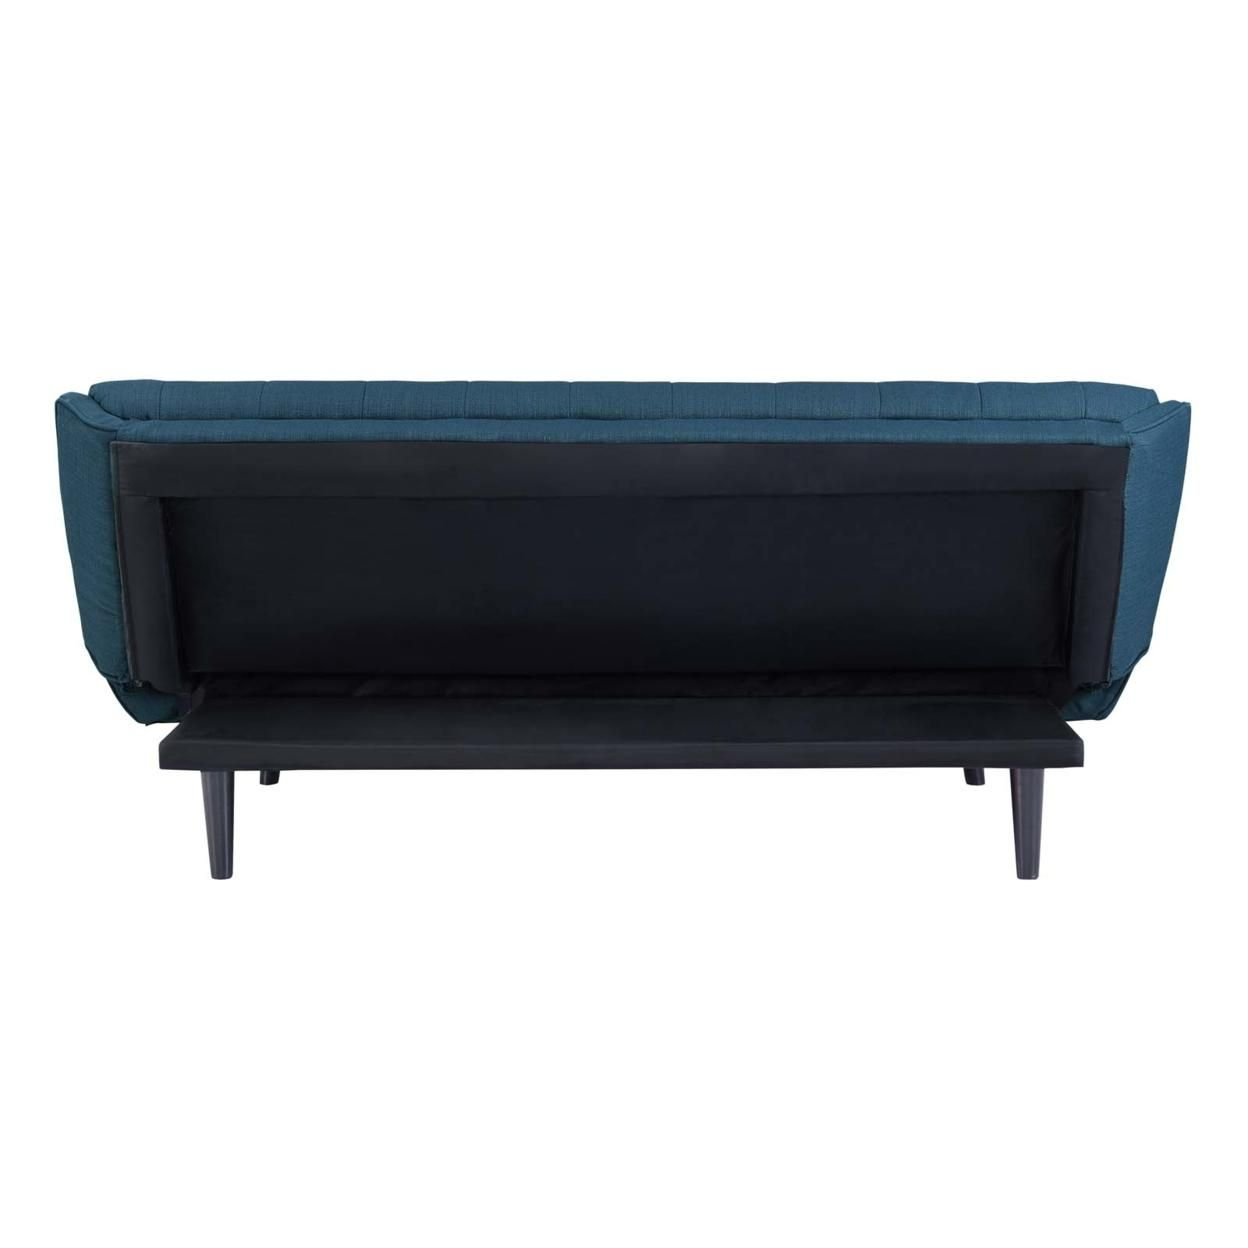 Glance Tufted Convertible Fabric Sofa Bed (3093-AZU)